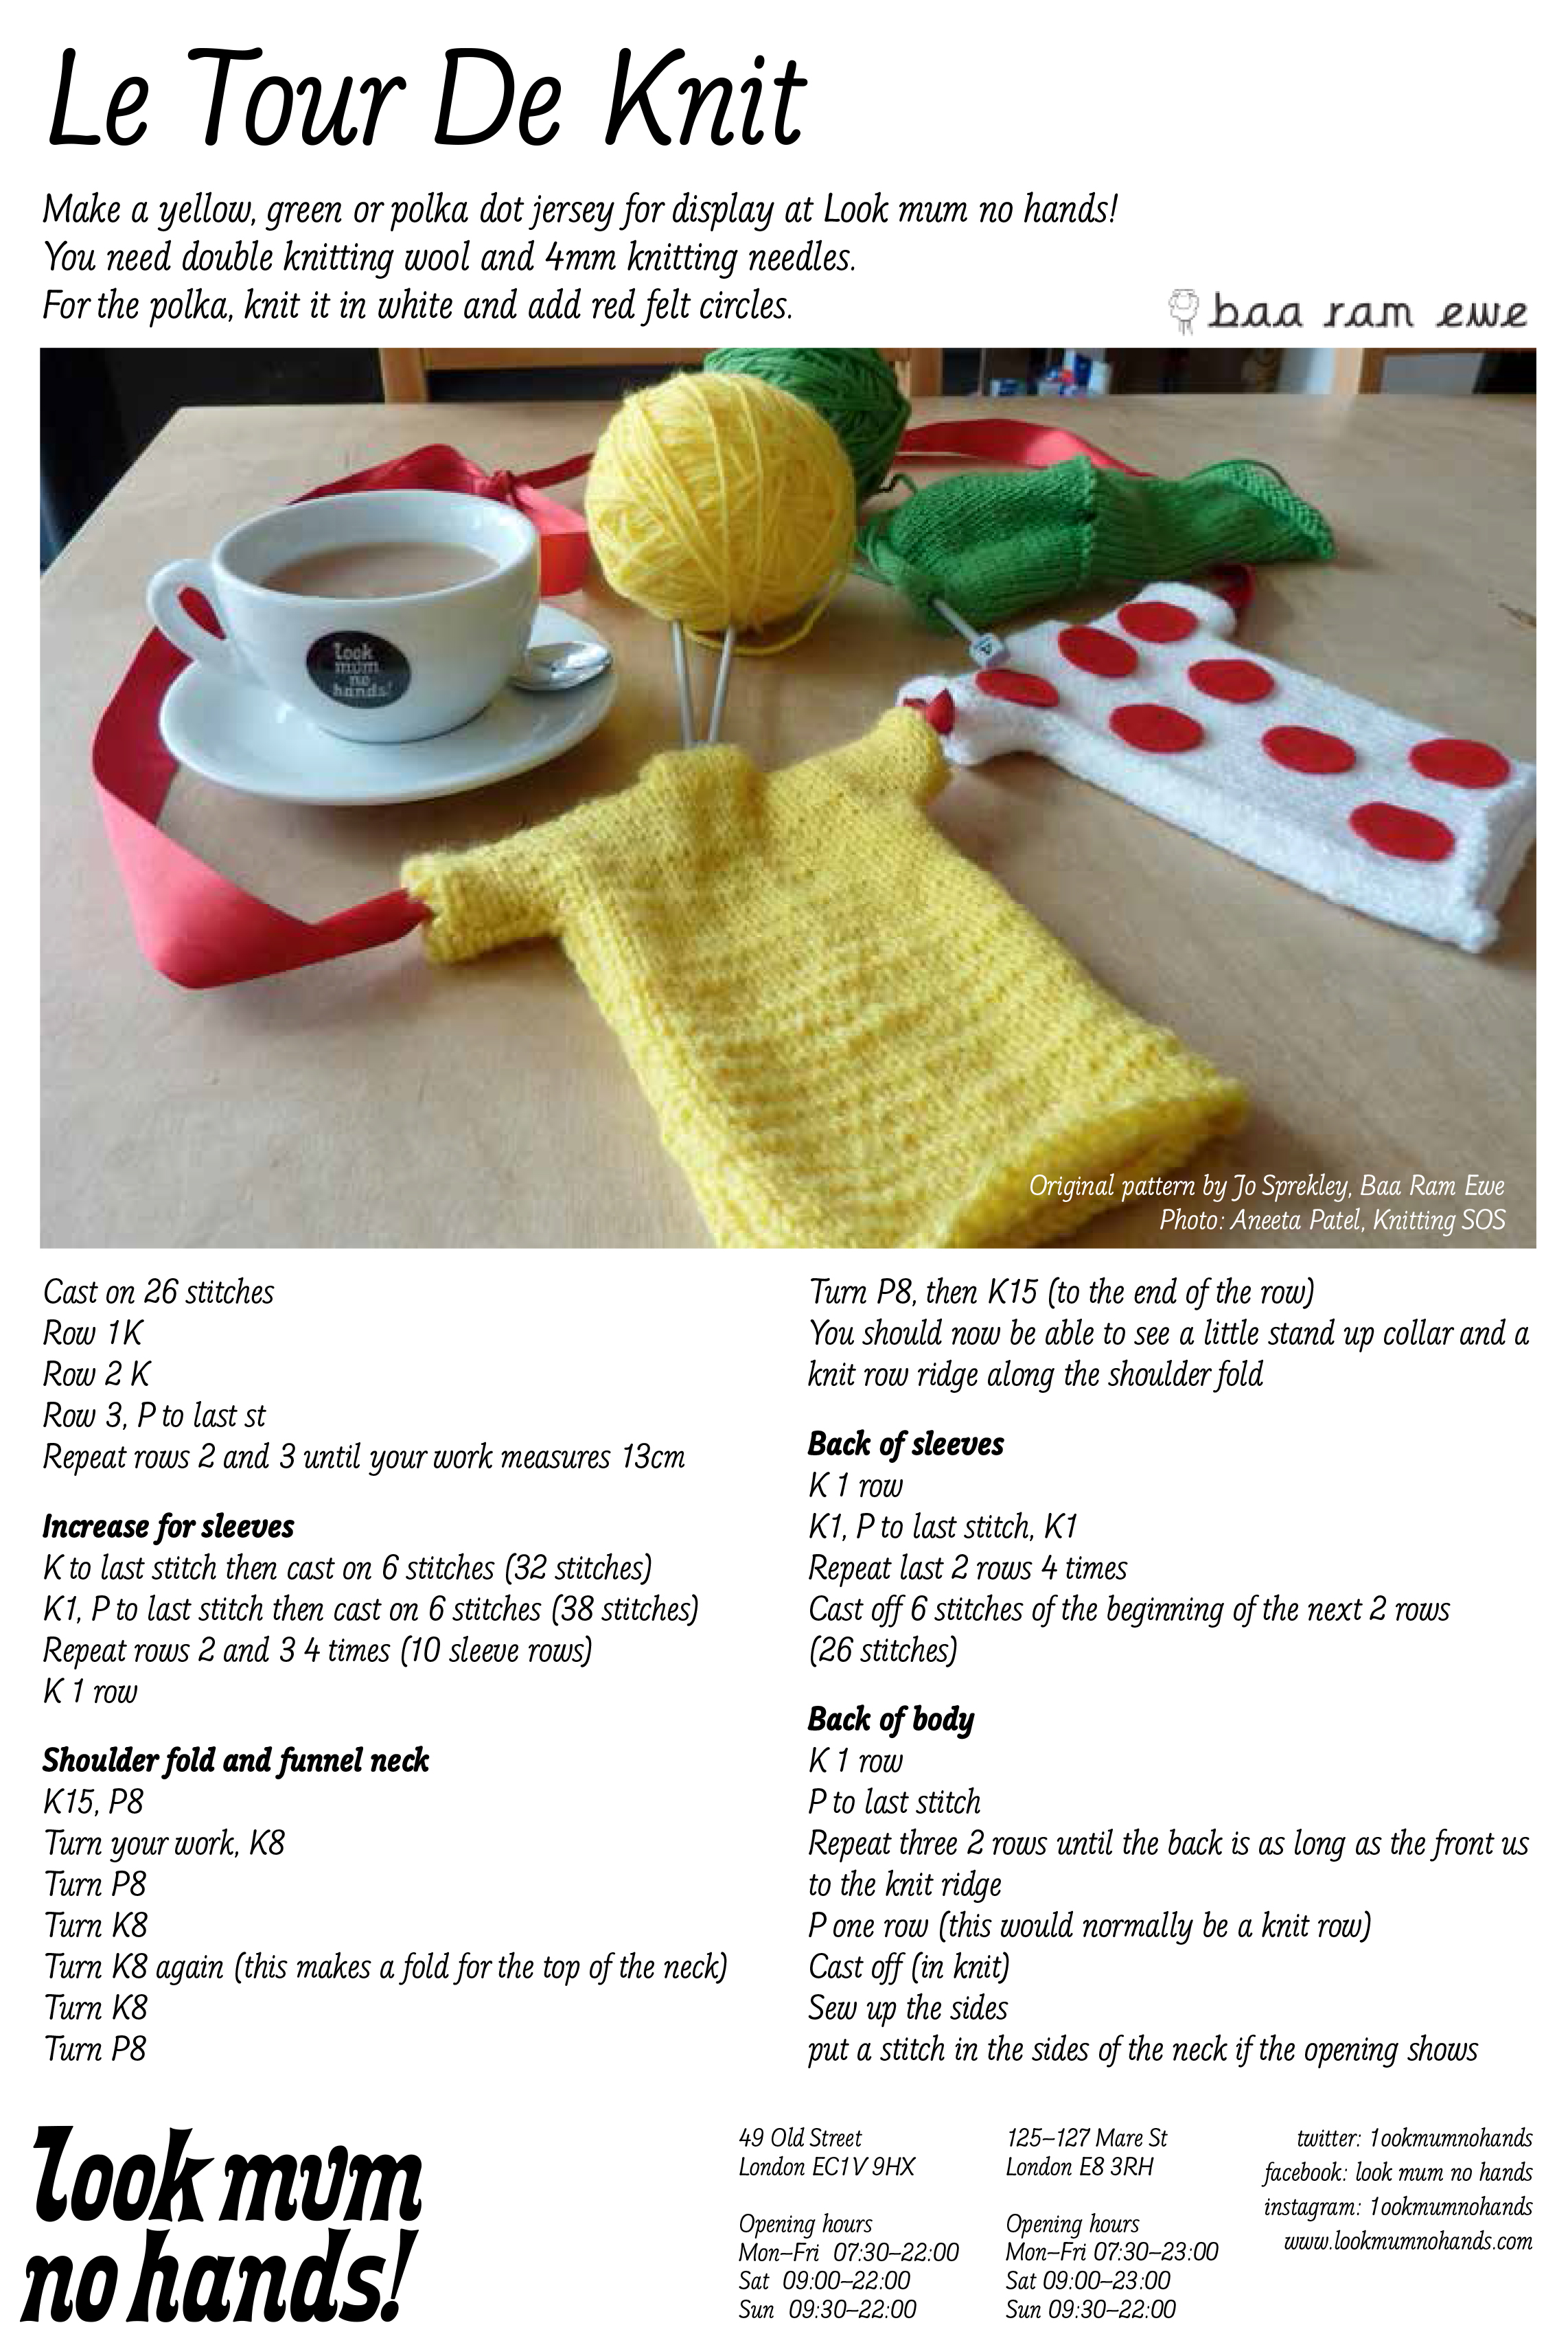 Knit your own mini jersey look mum no hands download the pattern here bankloansurffo Images